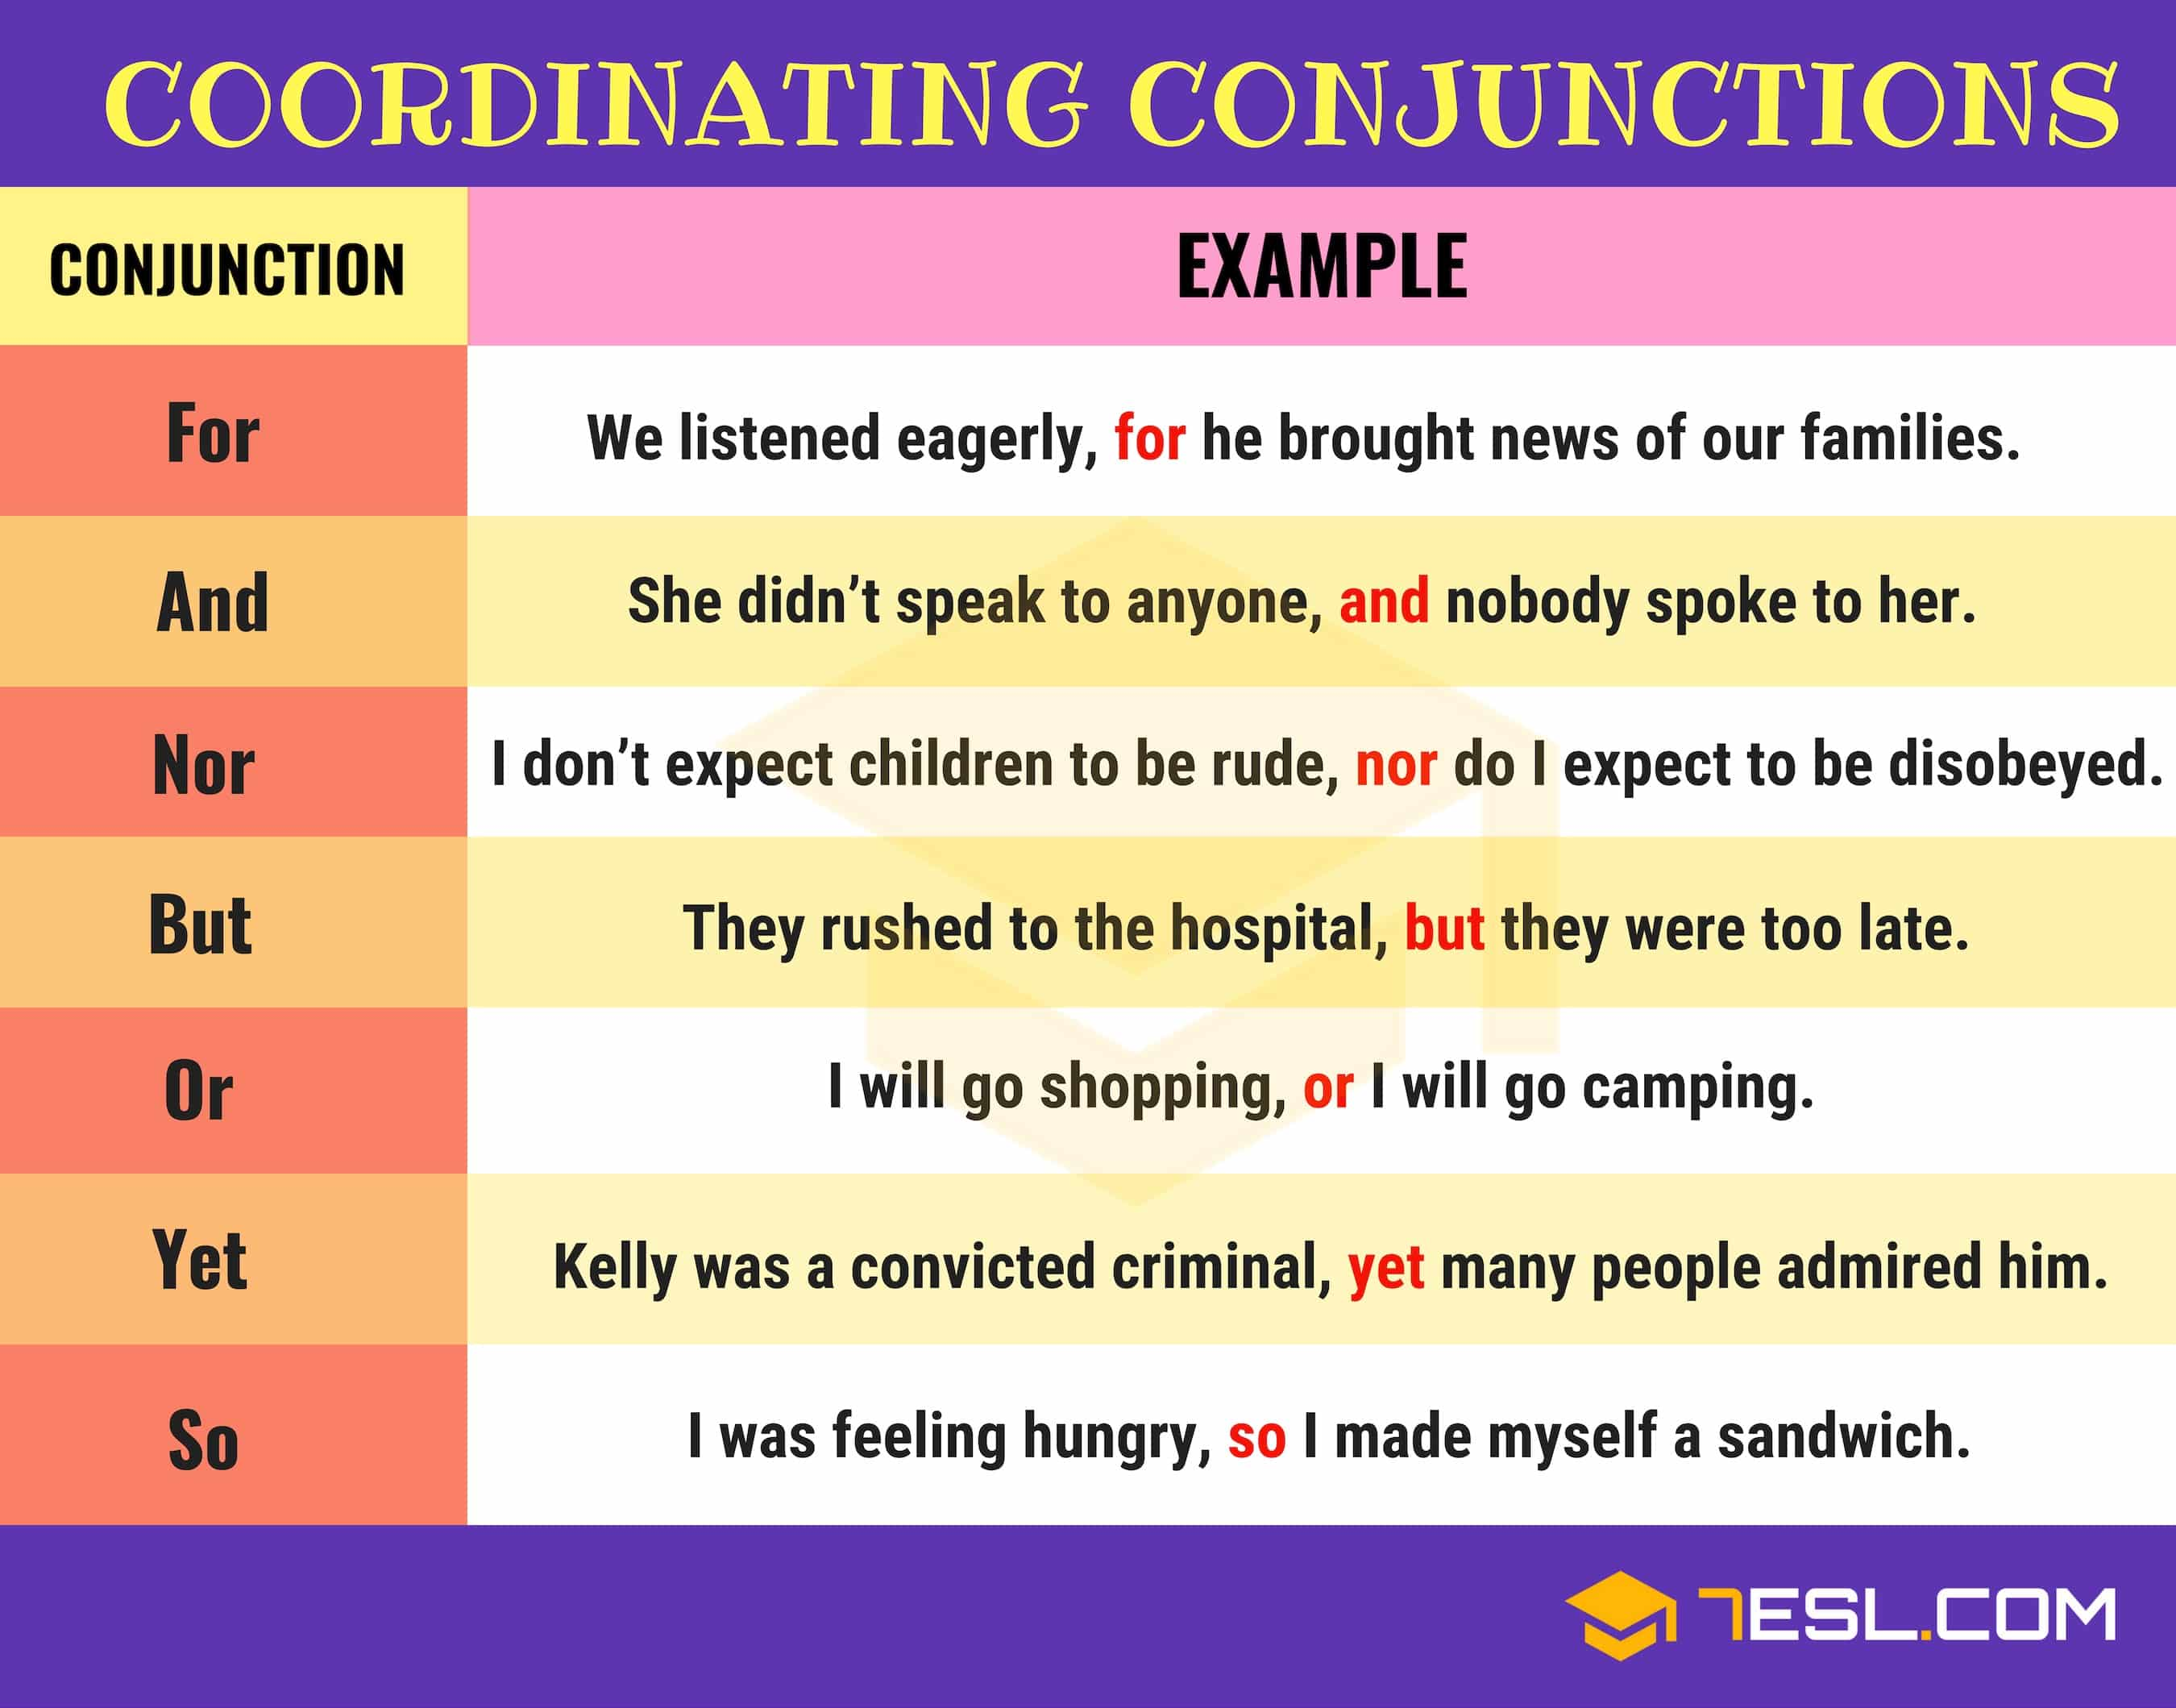 FANBOYS Conjunctions!!! Learn list of coordinating conjunctions (FANBOYS) in English with example sentences and how to use FANBOYS conjunctions in English sentences.